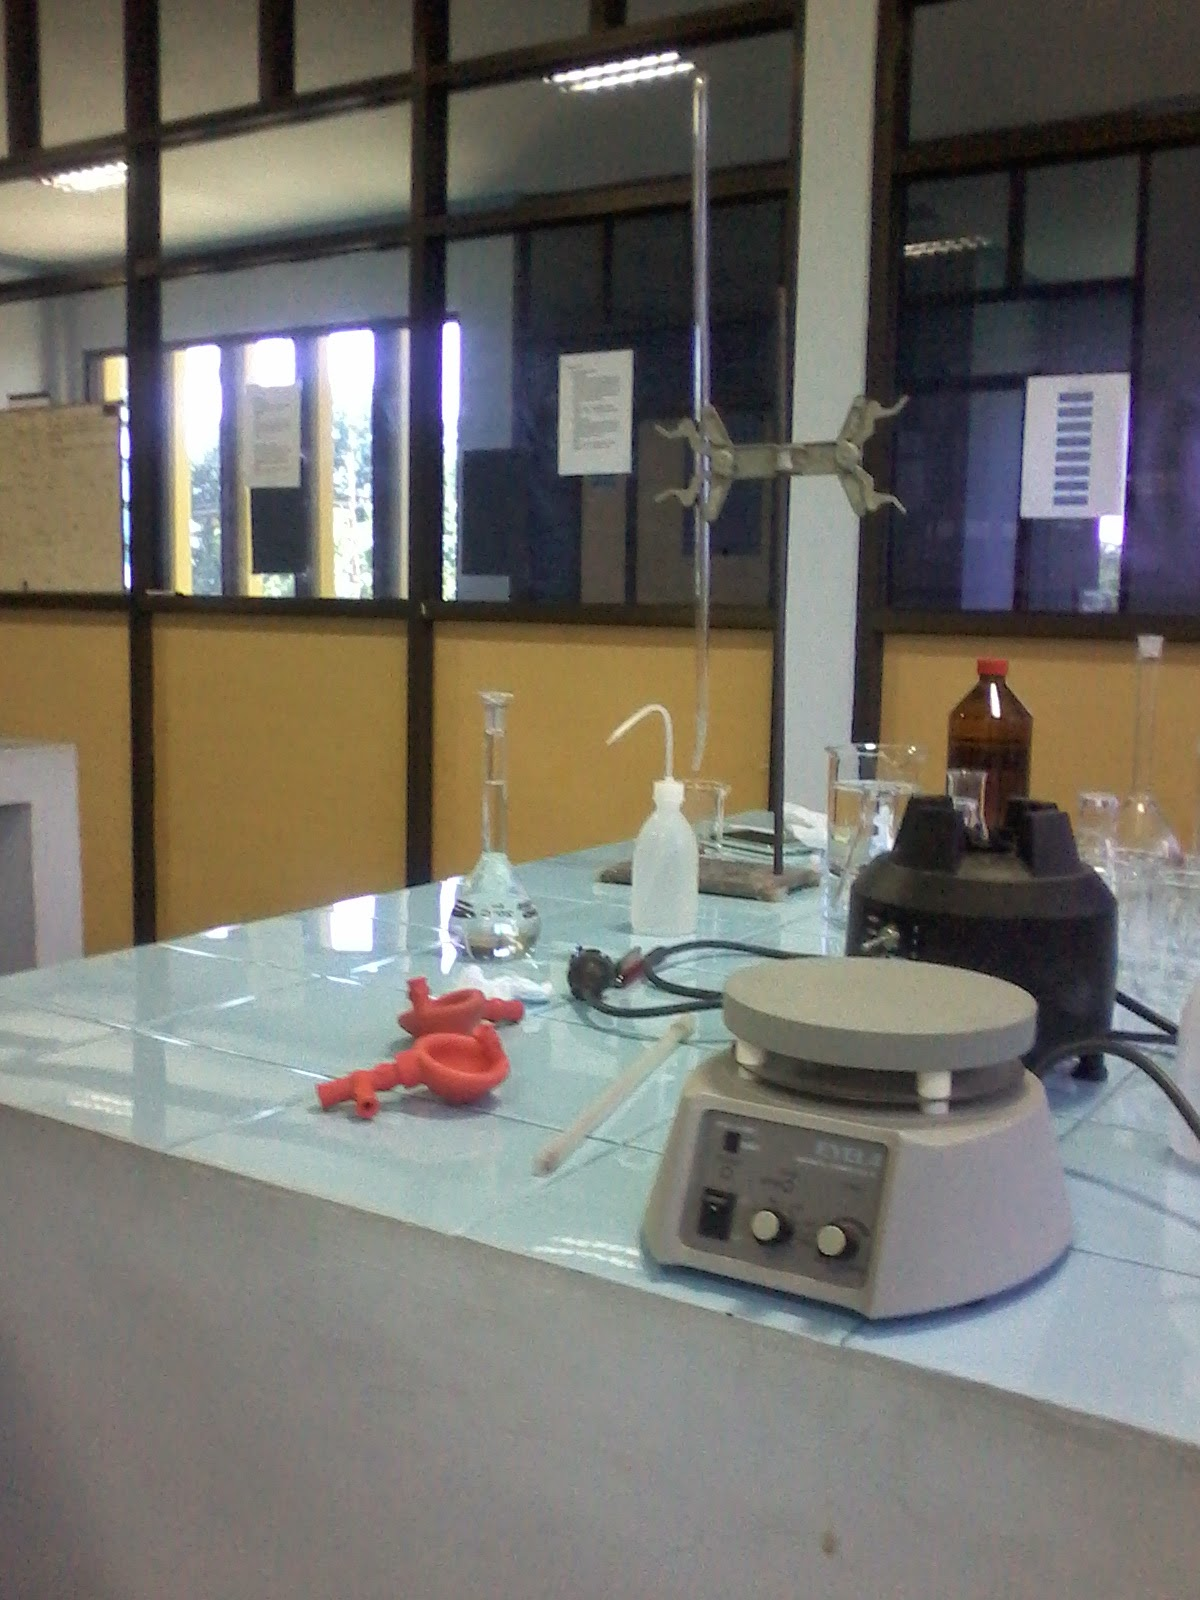 Sanitasi laboratorium kimia